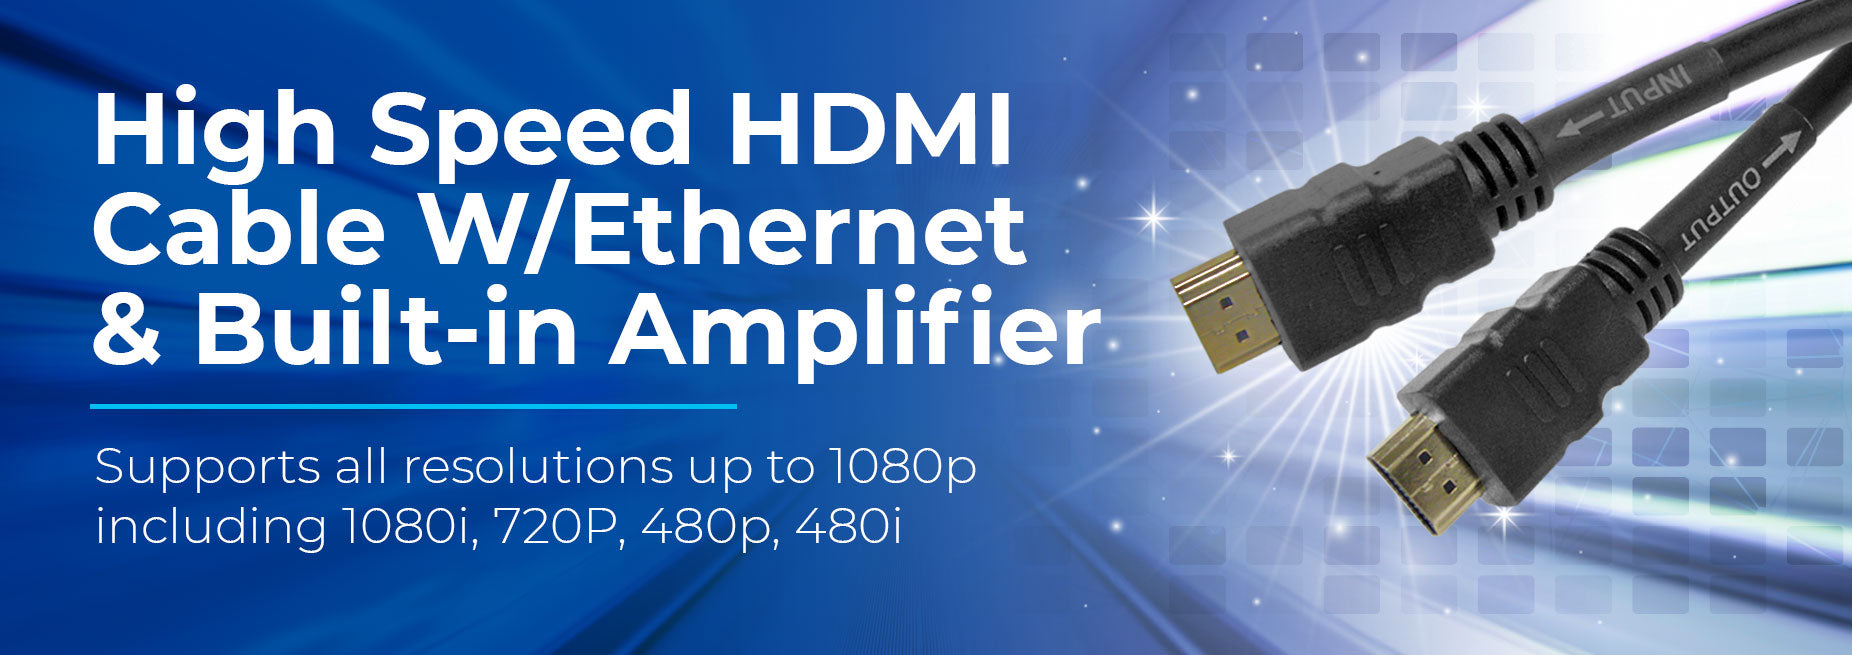 High Speed HDMI Cable with Ethernet & Built-In Amplifier - Primus Cable